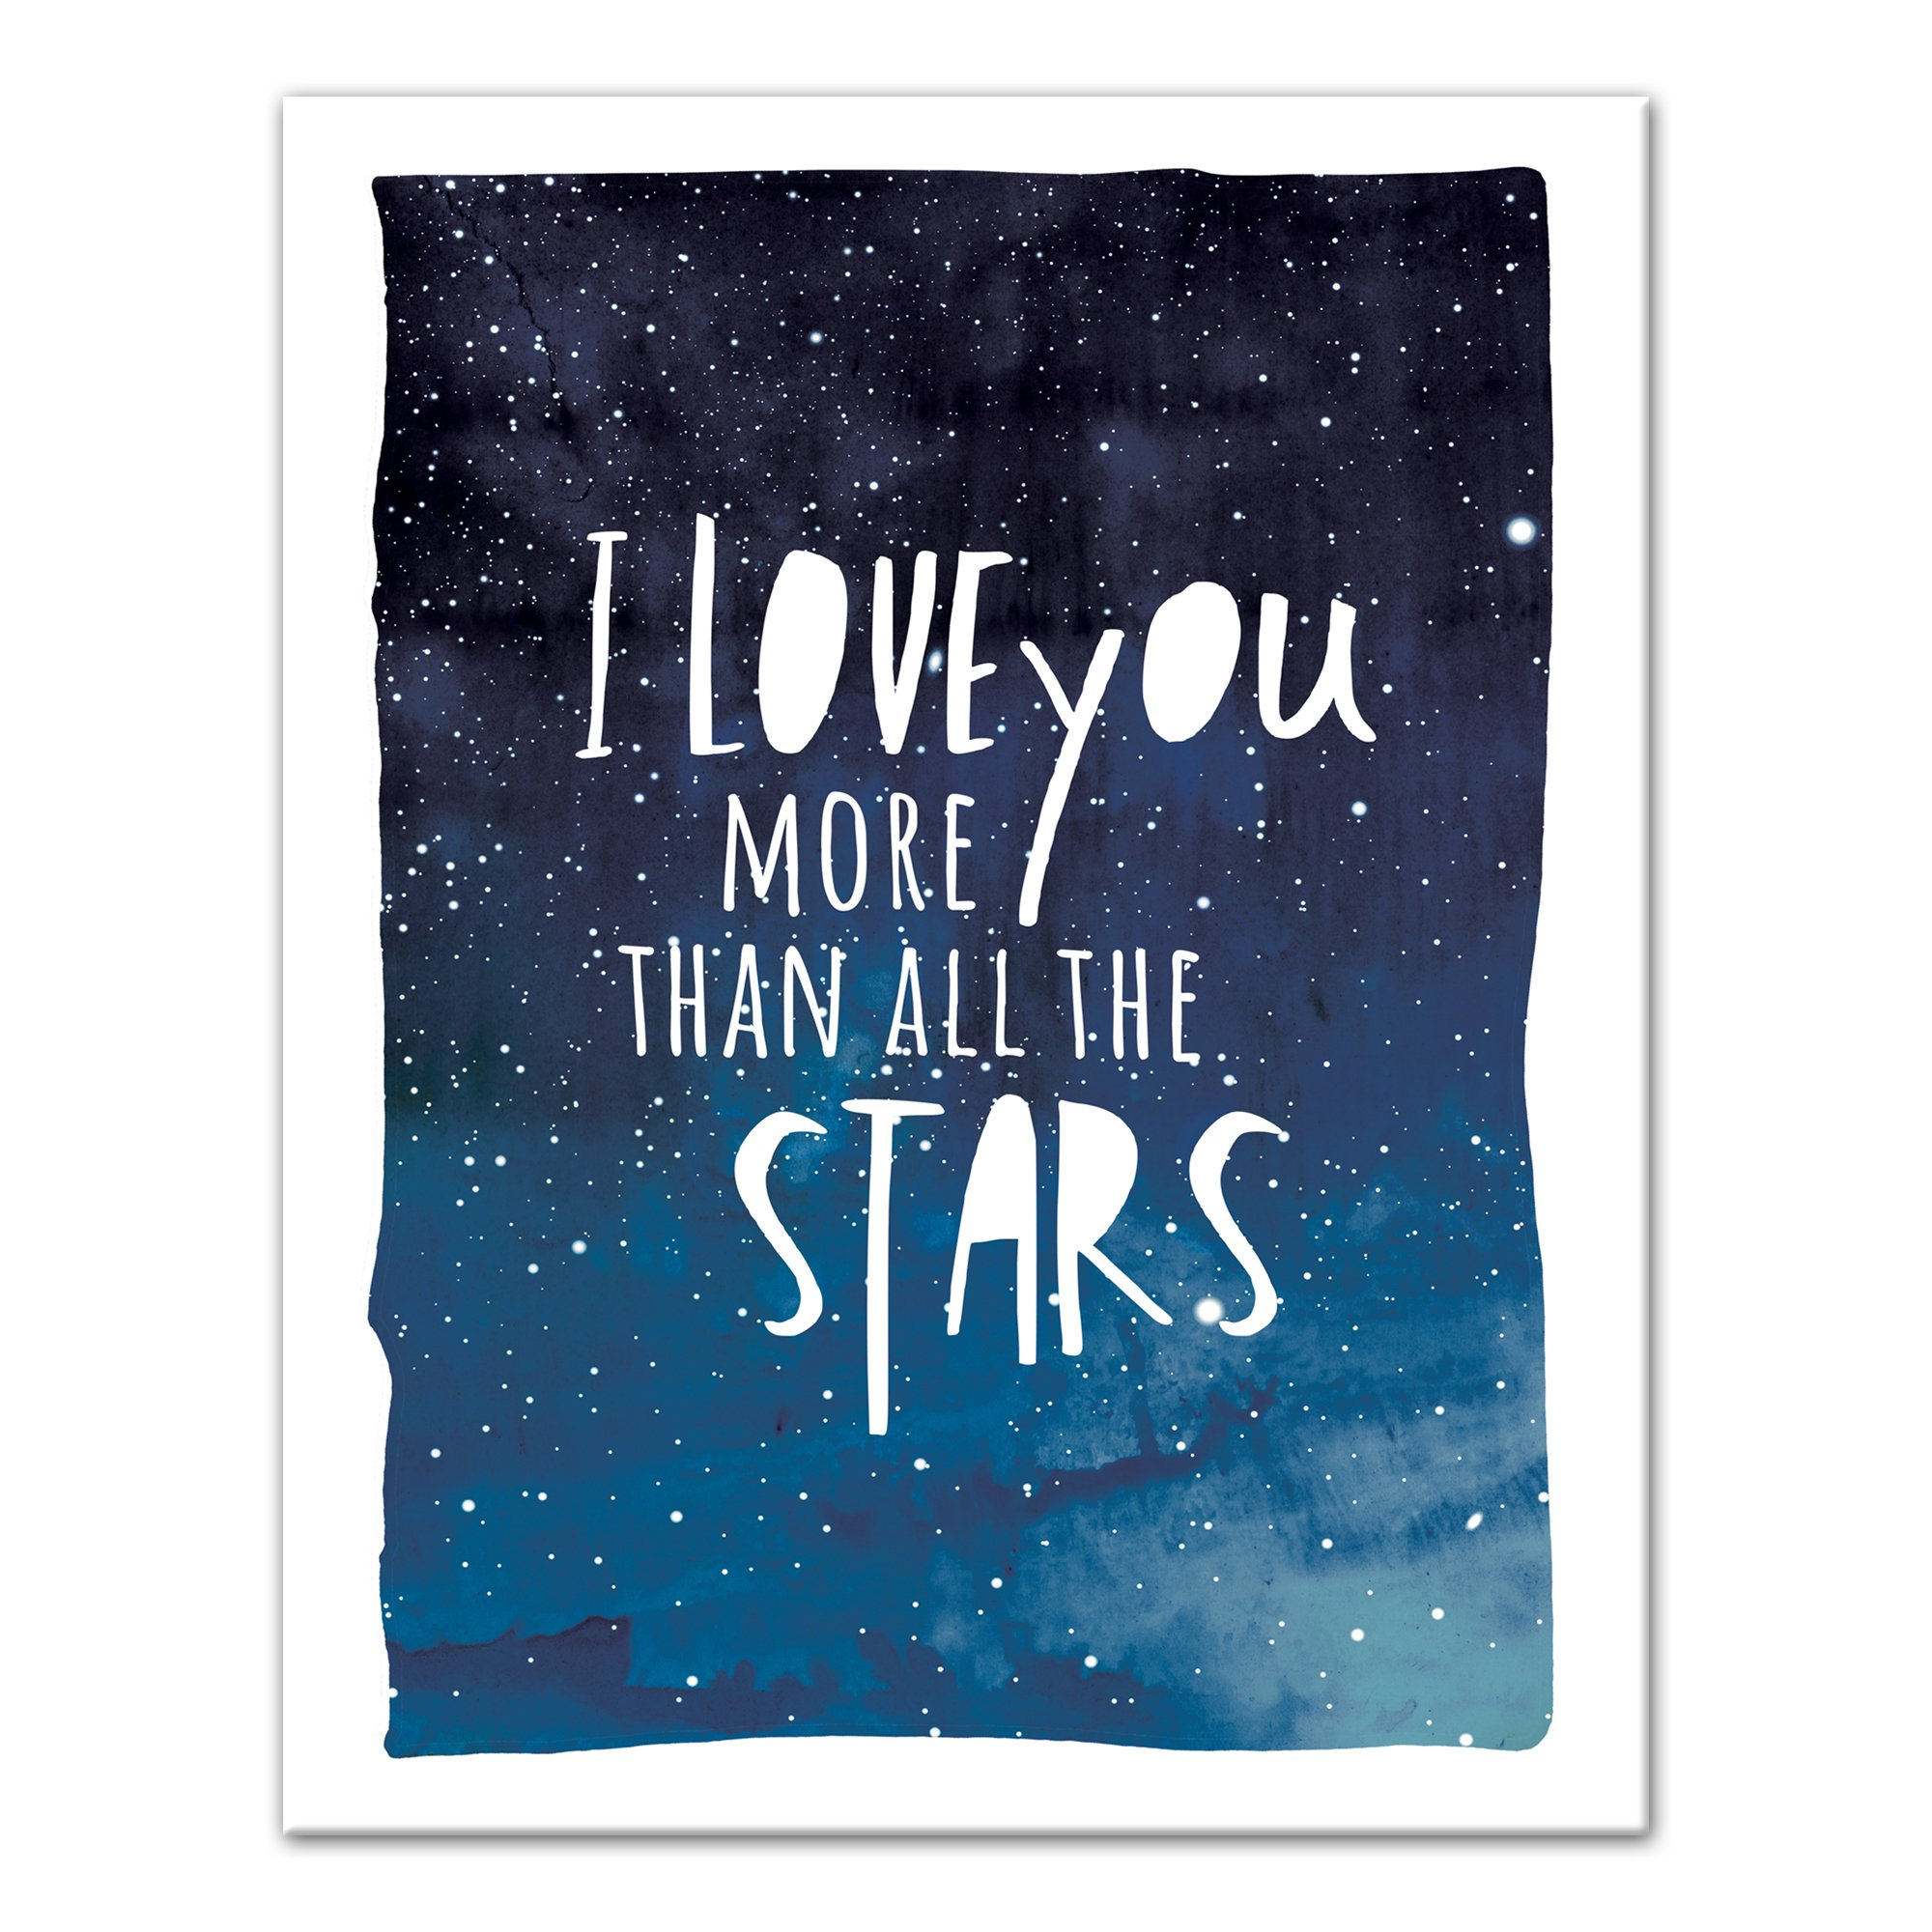 I Love You More Than All The Stars 11x14 Canvas Wall Art